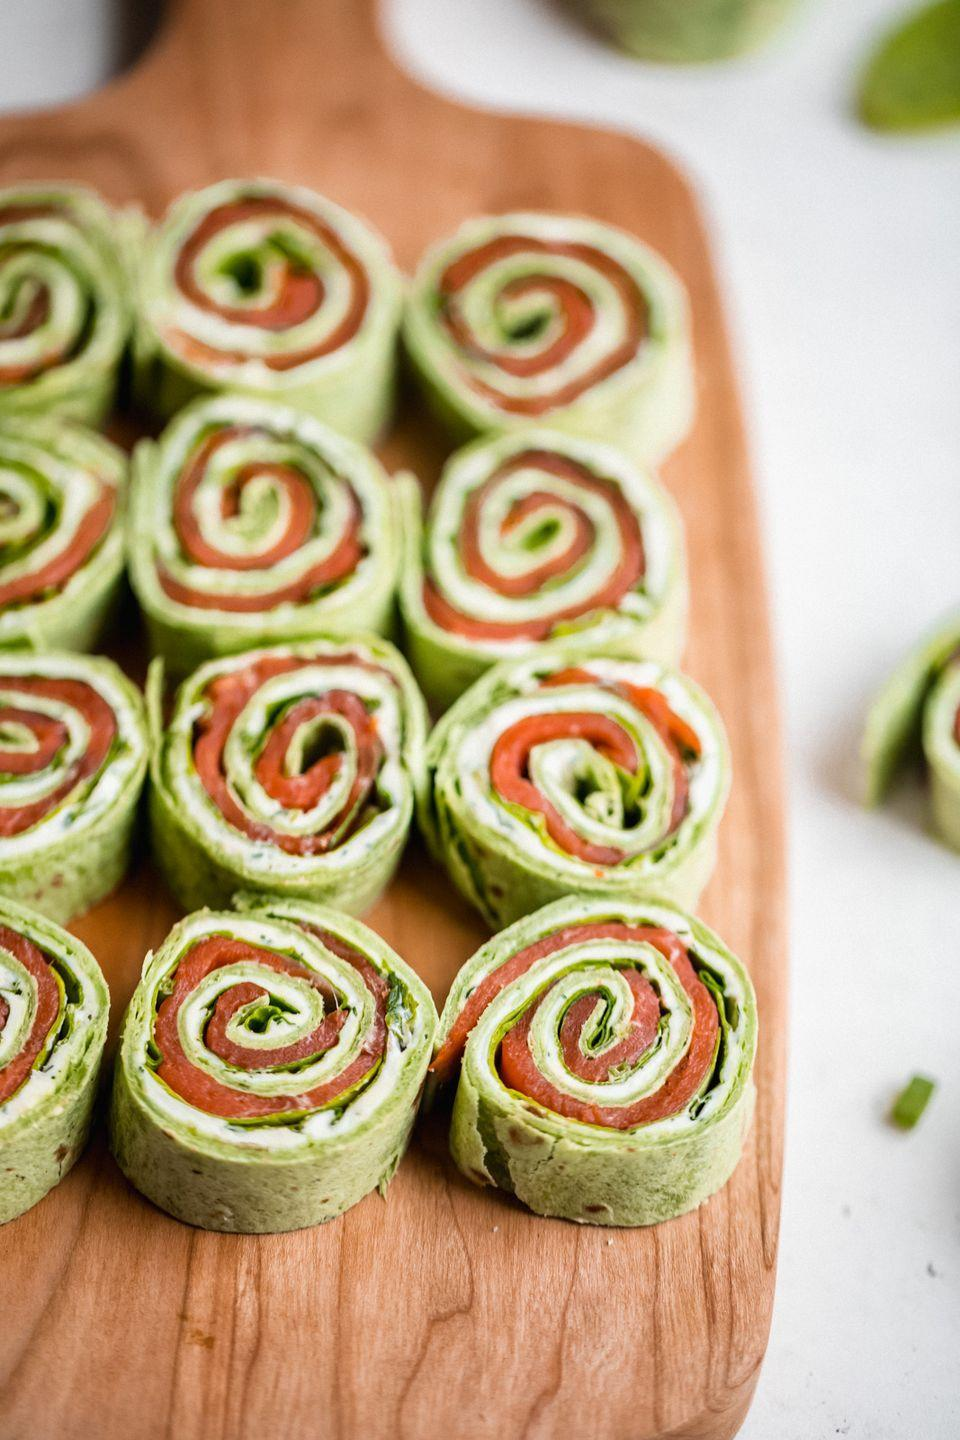 "<p>To add some variety to the app feast, try these smoked salmon pinwheels that are both tasty and super quick to make.</p><p><strong>Get the recipe at <a href=""https://www.ambitiouskitchen.com/smoked-salmon-pinwheels/"" rel=""nofollow noopener"" target=""_blank"" data-ylk=""slk:Ambitious Kitchen"" class=""link rapid-noclick-resp"">Ambitious Kitchen</a>.</strong></p><p><strong><a class=""link rapid-noclick-resp"" href=""https://www.amazon.com/Premium-Stainless-Steel-Mixing-Brushed/dp/B01HTYH8YA/r?tag=syn-yahoo-20&ascsubtag=%5Bartid%7C10050.g.2966%5Bsrc%7Cyahoo-us"" rel=""nofollow noopener"" target=""_blank"" data-ylk=""slk:SHOP MIXING BOWLS"">SHOP MIXING BOWLS</a><br></strong></p>"